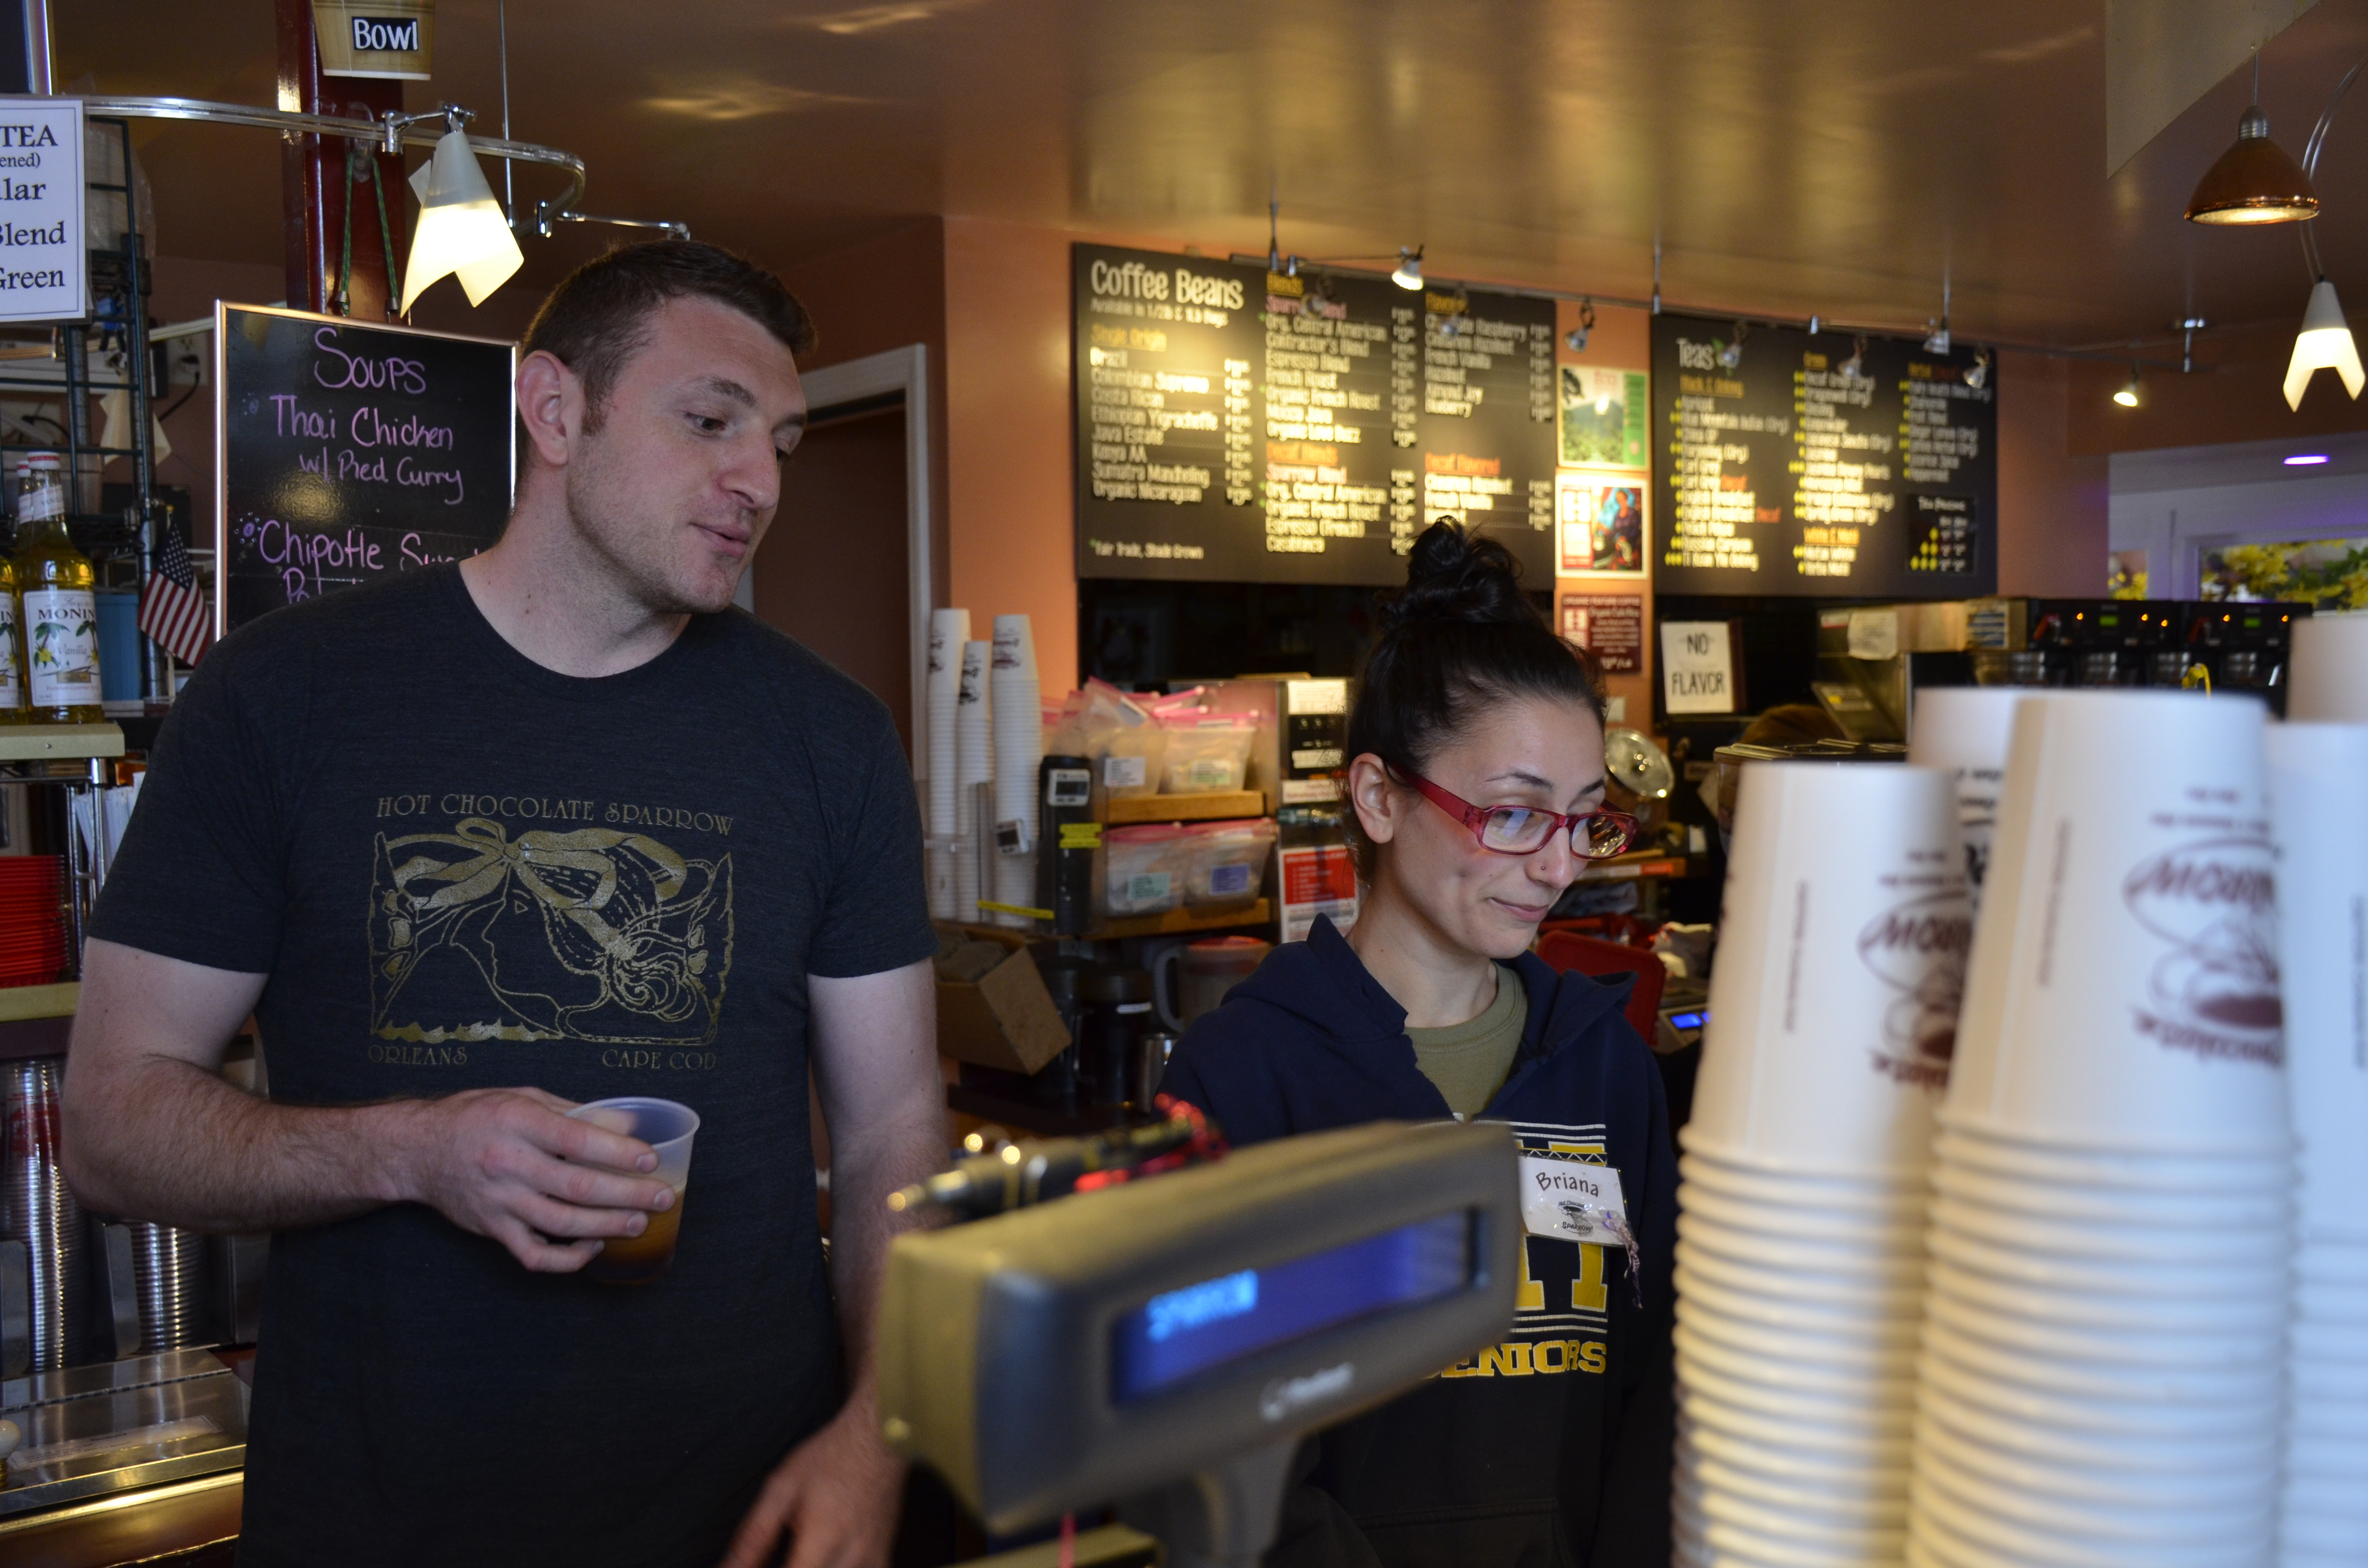 Perry Sparrow (left) and his employee Briana Trafuoci behind the counter at the Hot Chocolate Sparrow. In part due to the high cost of housing on the Cape, Sparrow says there's not enough local seasonal workers to hire.